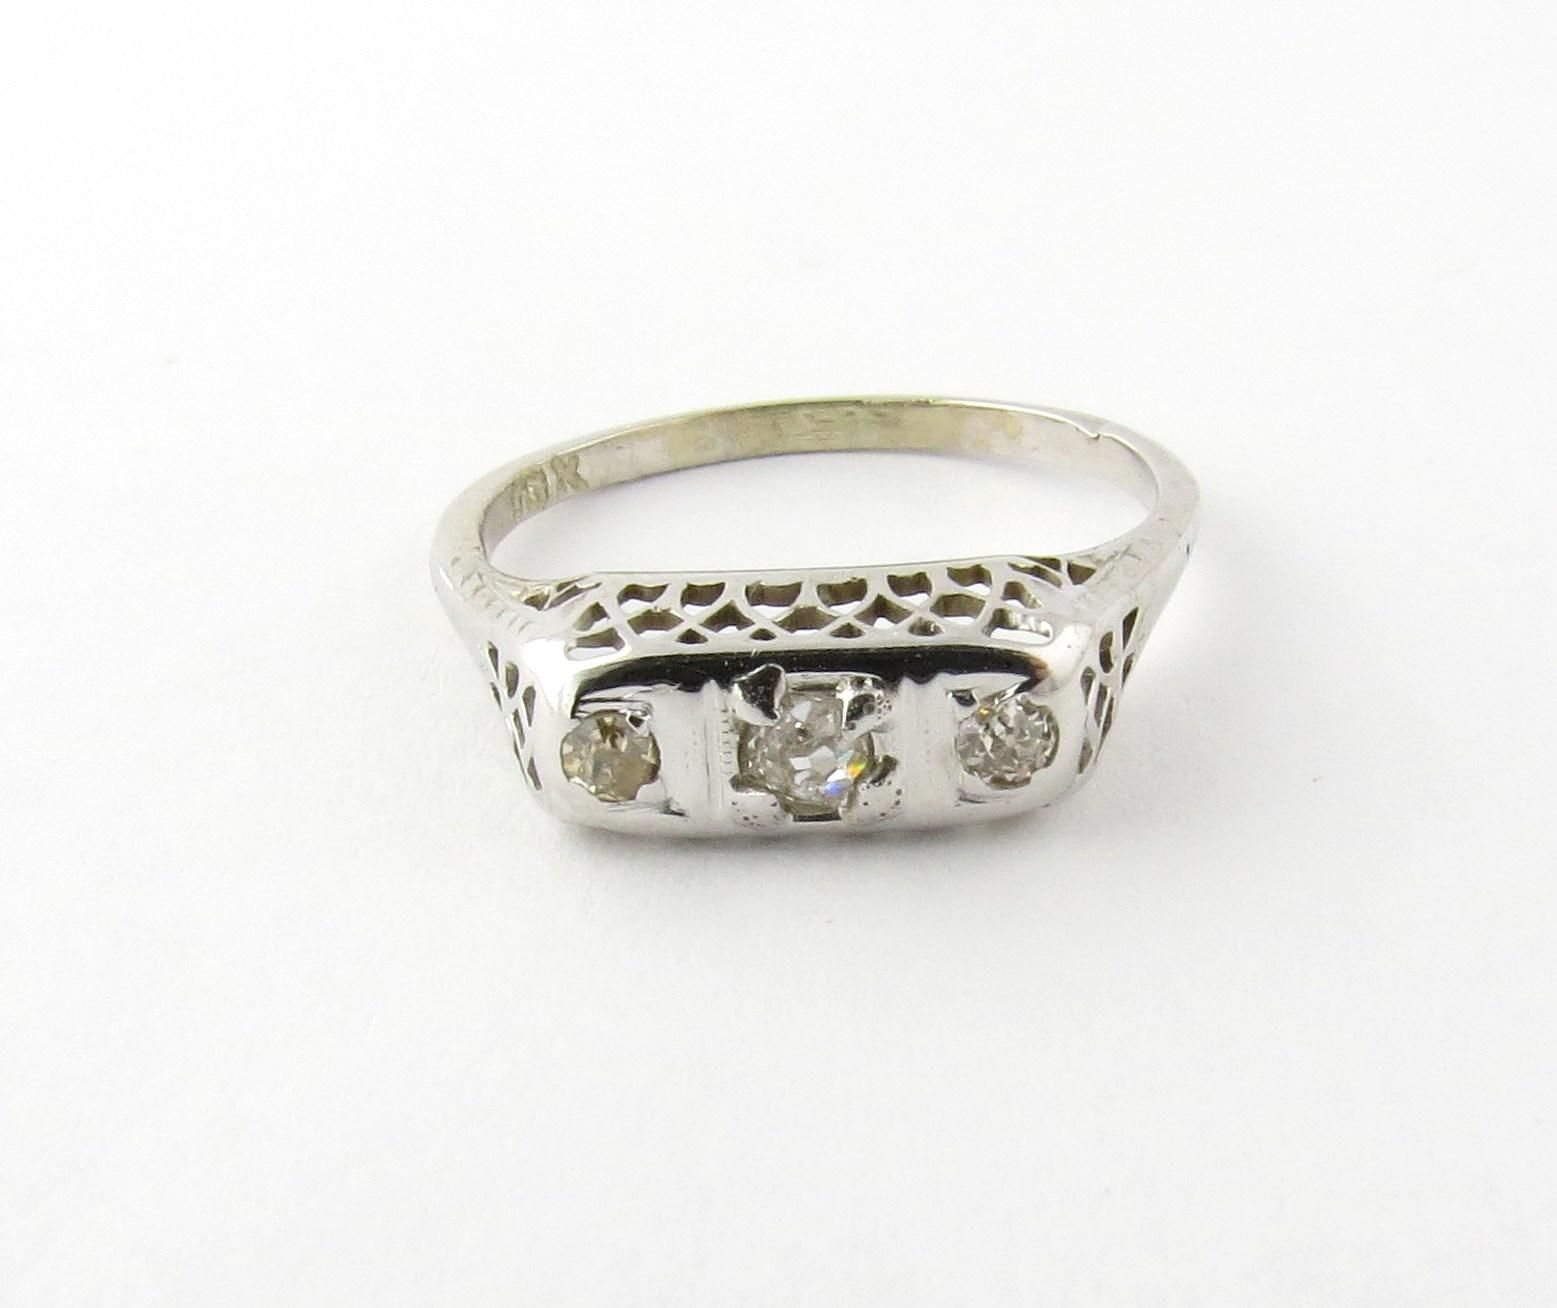 Antique 18K White Gold Filigree 3 Old Mine Diamond Ring  Size 6.5 This diamond ring has a rectangular filigree front design set with 3 old mine